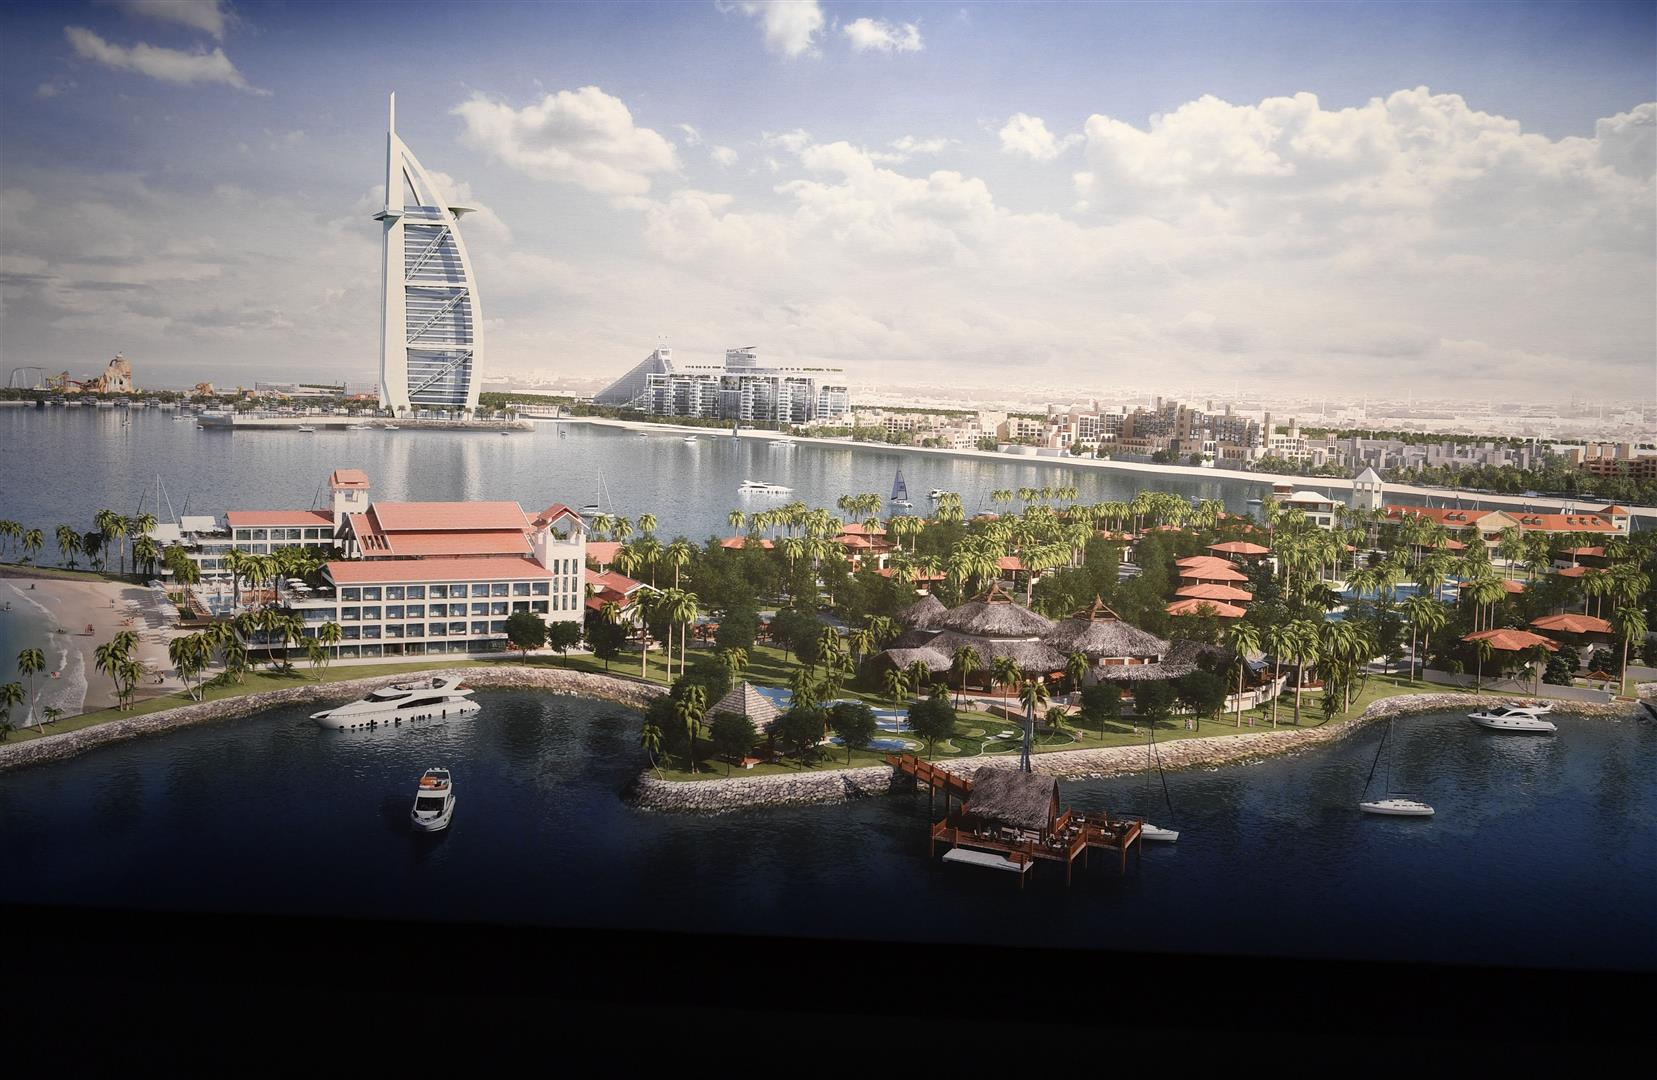 Marsa Al Arab will feature hotels, waterfront apartments, 140 villas, a marina, a water park and a theatre with capacity for 1,700 people